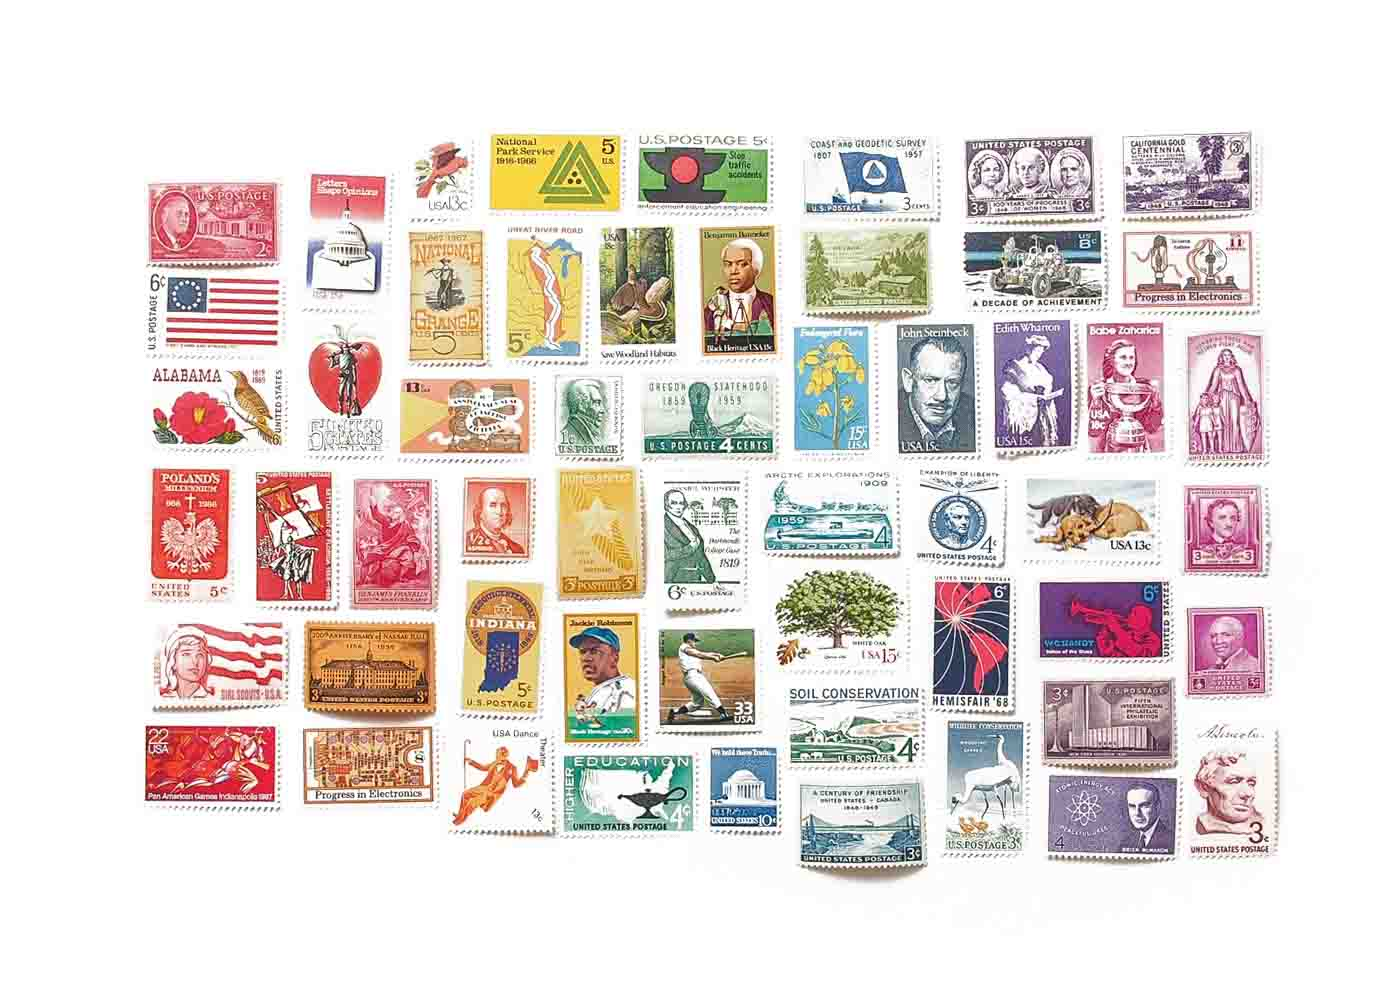 Vintage stamps are a great way to add a special flourish to one's correspondence.